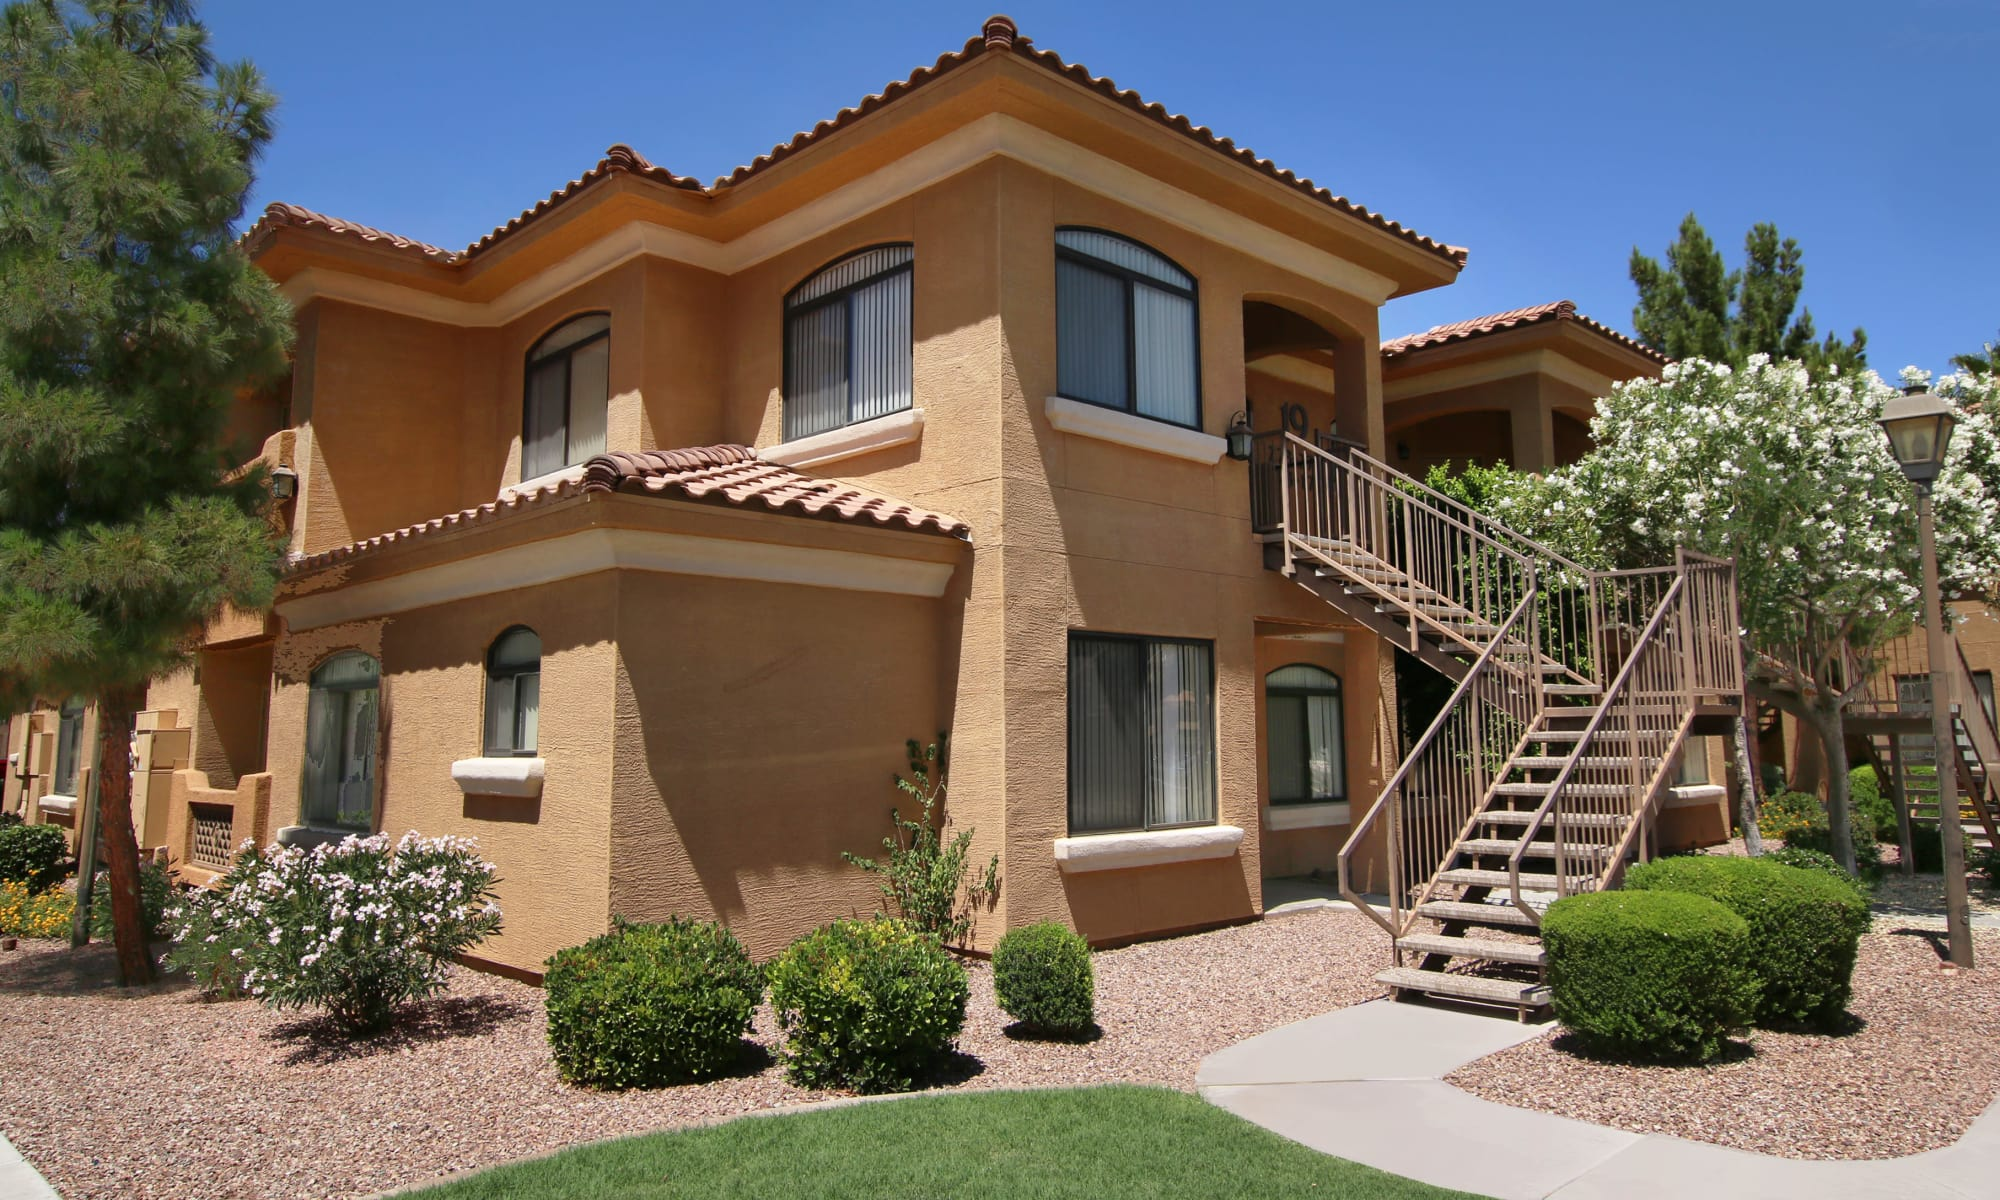 Apartments at The Retreat at the Raven in Phoenix, Arizona